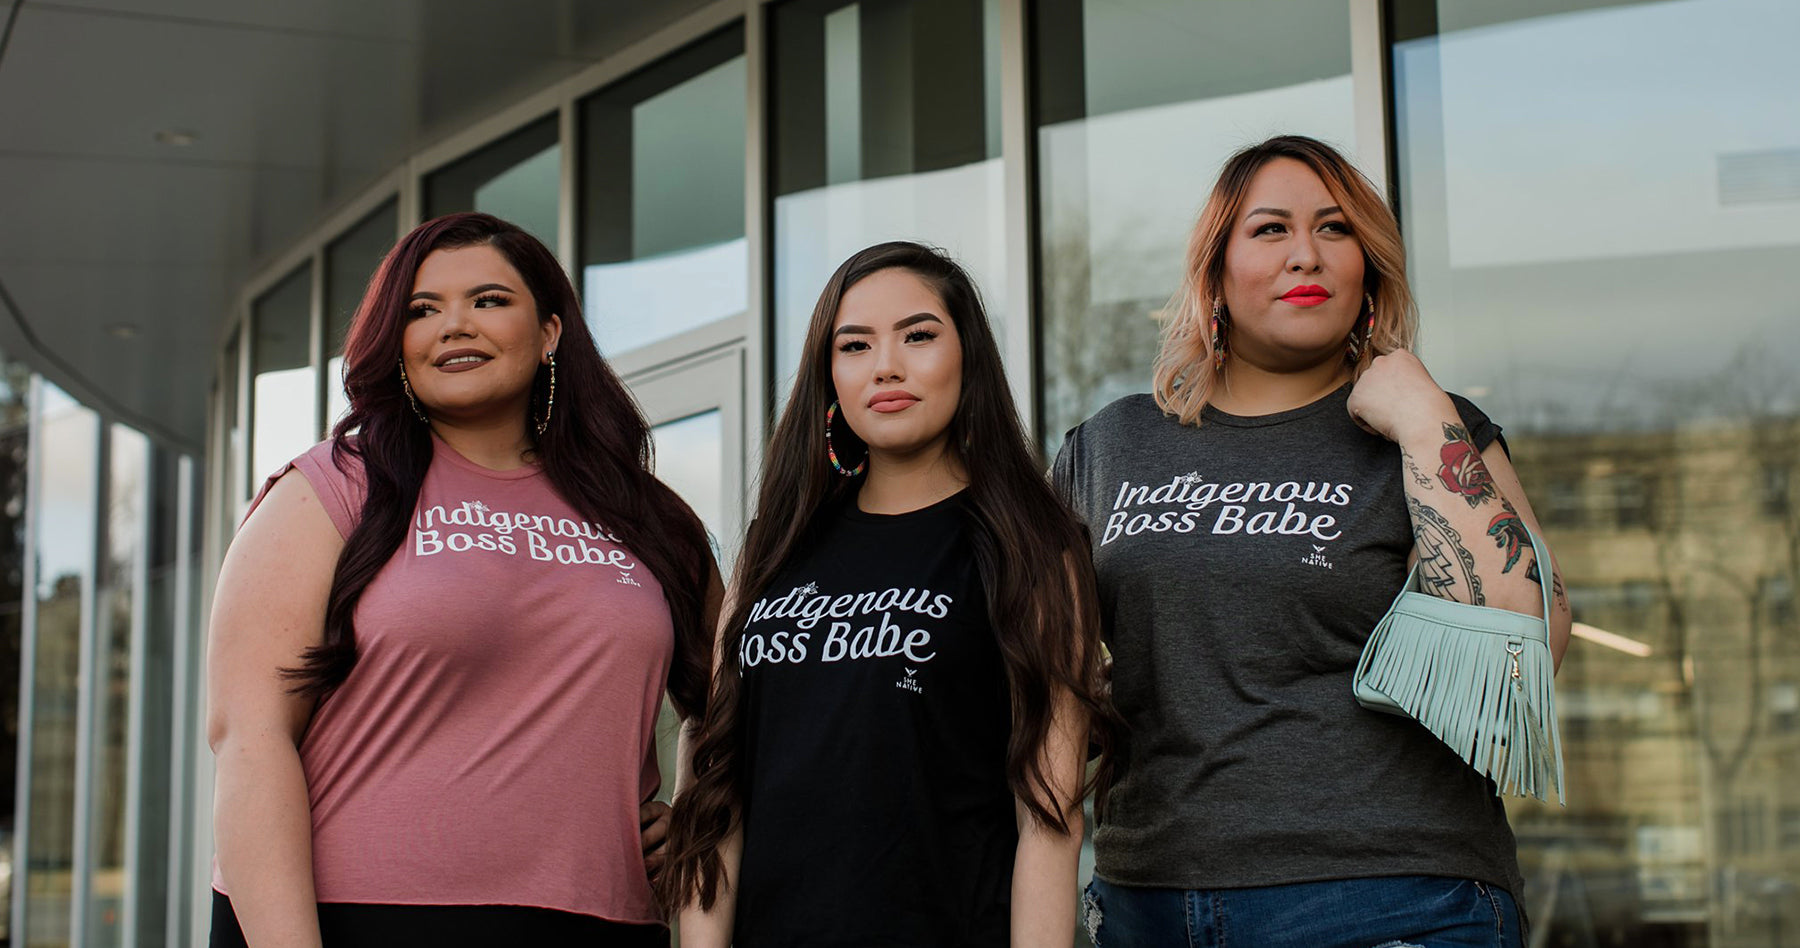 Photograph of three Indigenous women wearing t-shirts that read Indigenous Boss Babe created by the brand SheNative